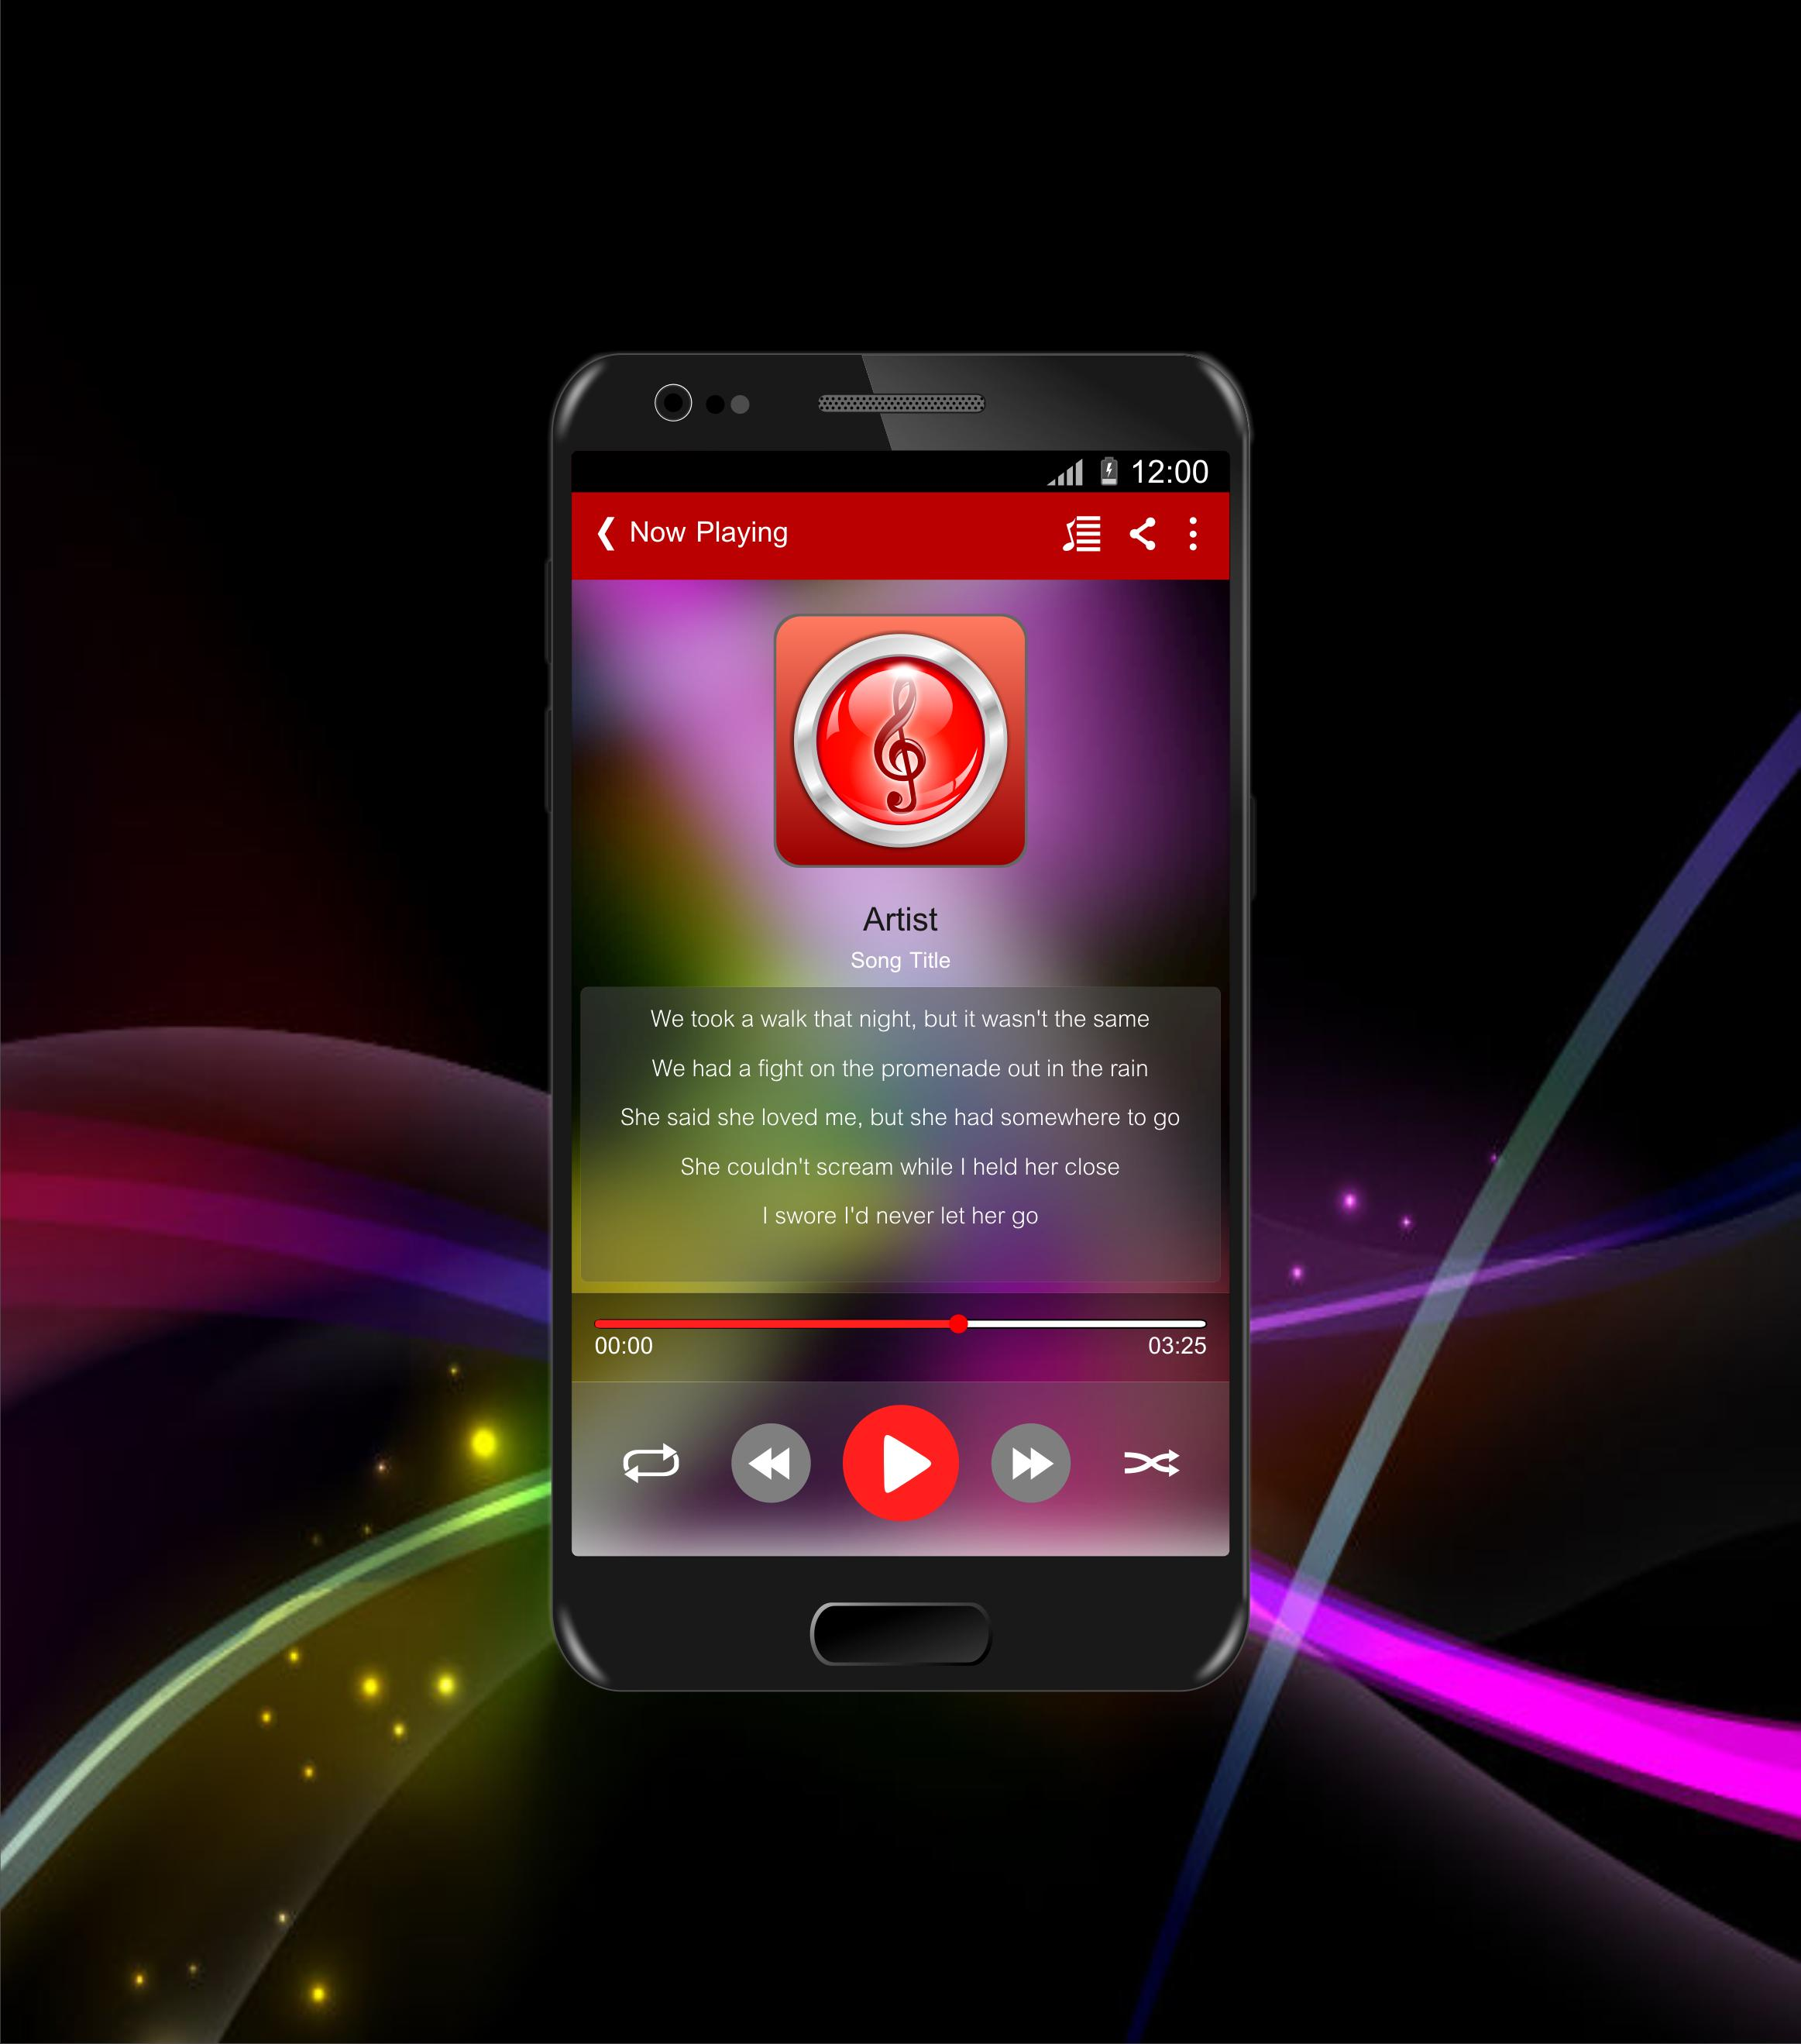 AJR - Weak Lyrics and Songs for Android - APK Download